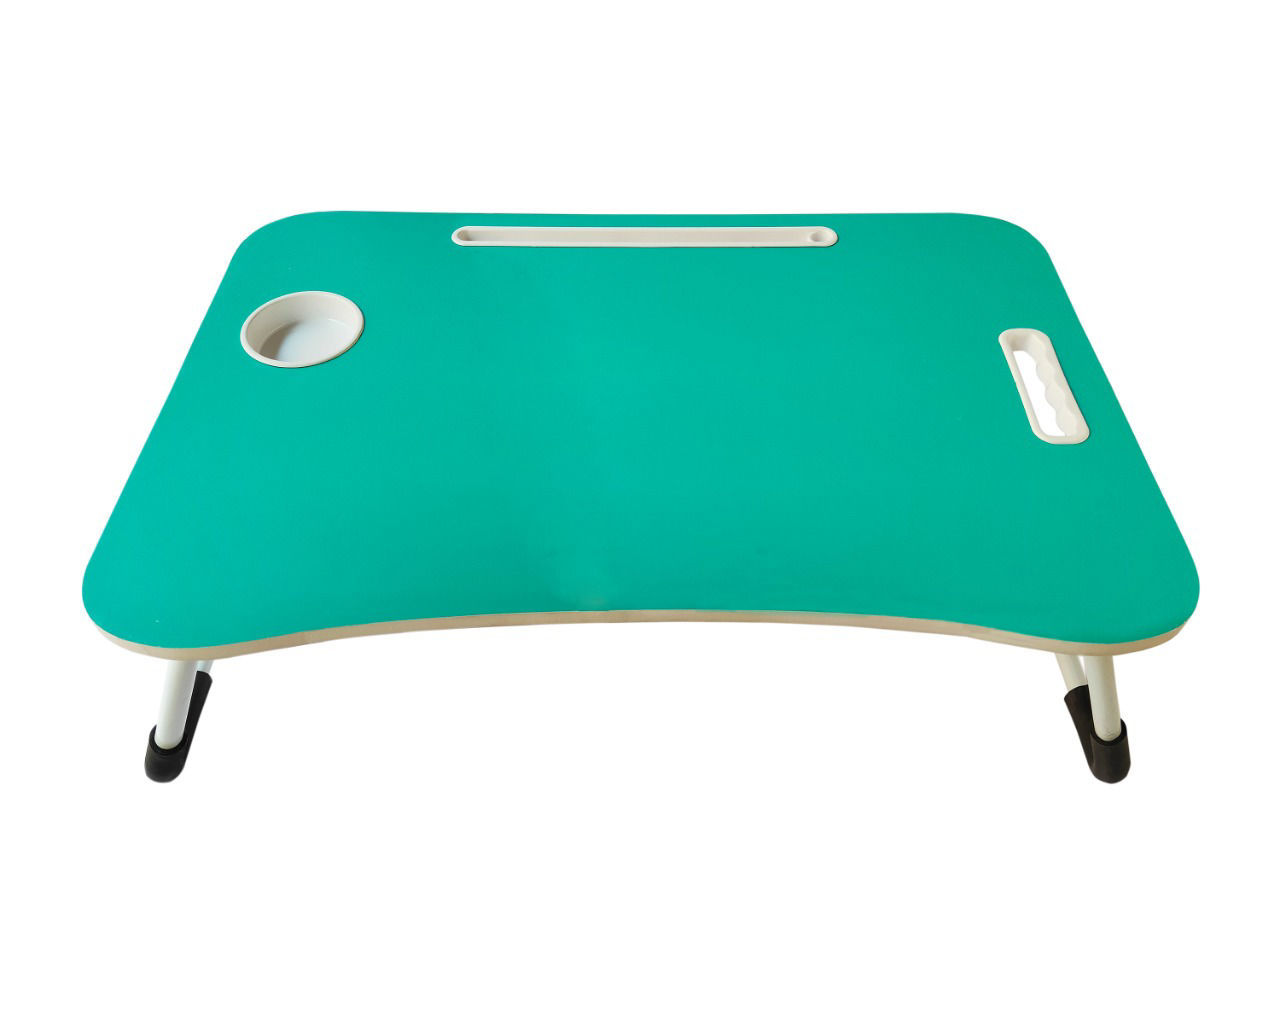 Wooden Bed Table -Green